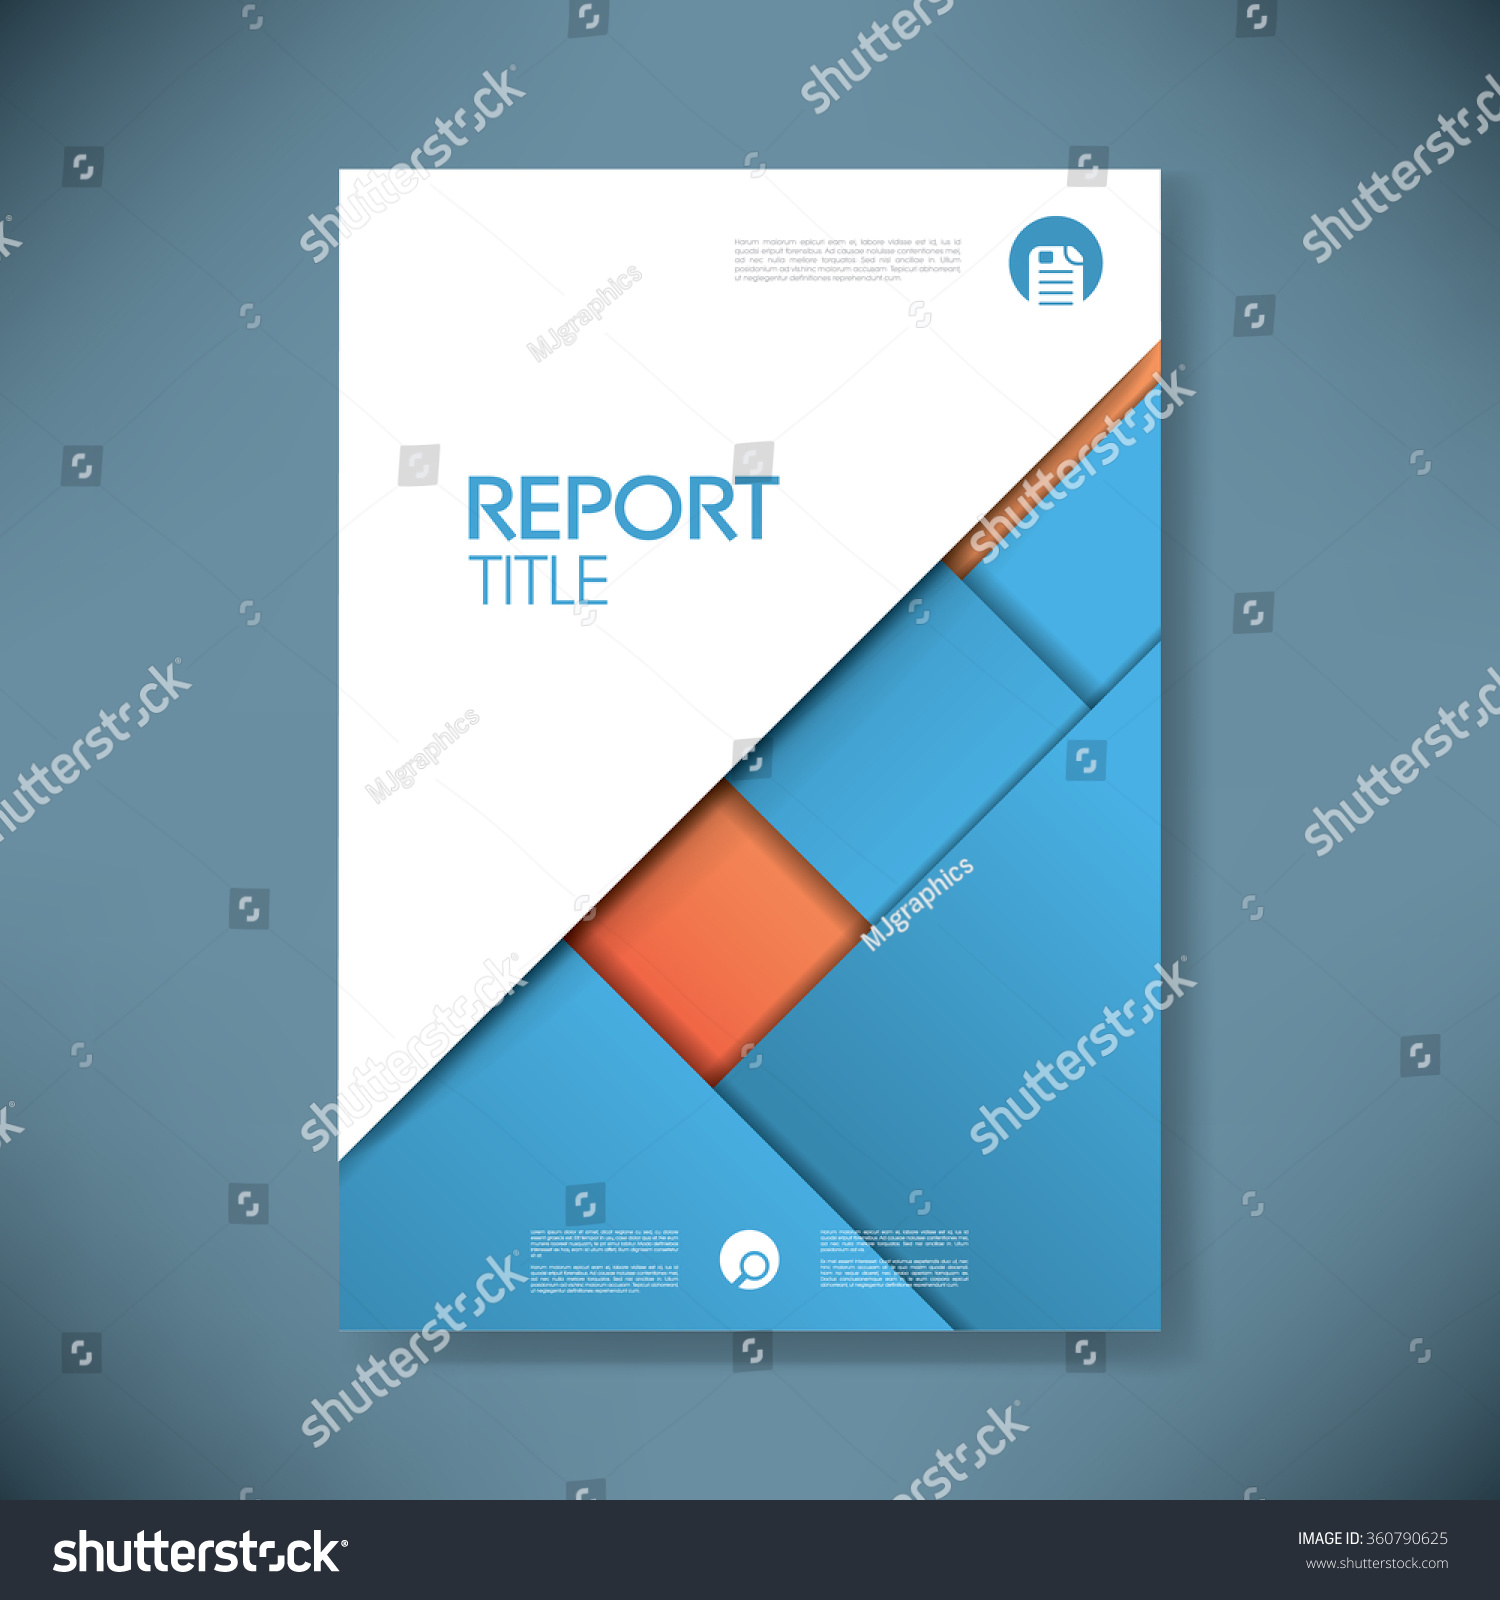 business report cover template on blue stock vector 360790625